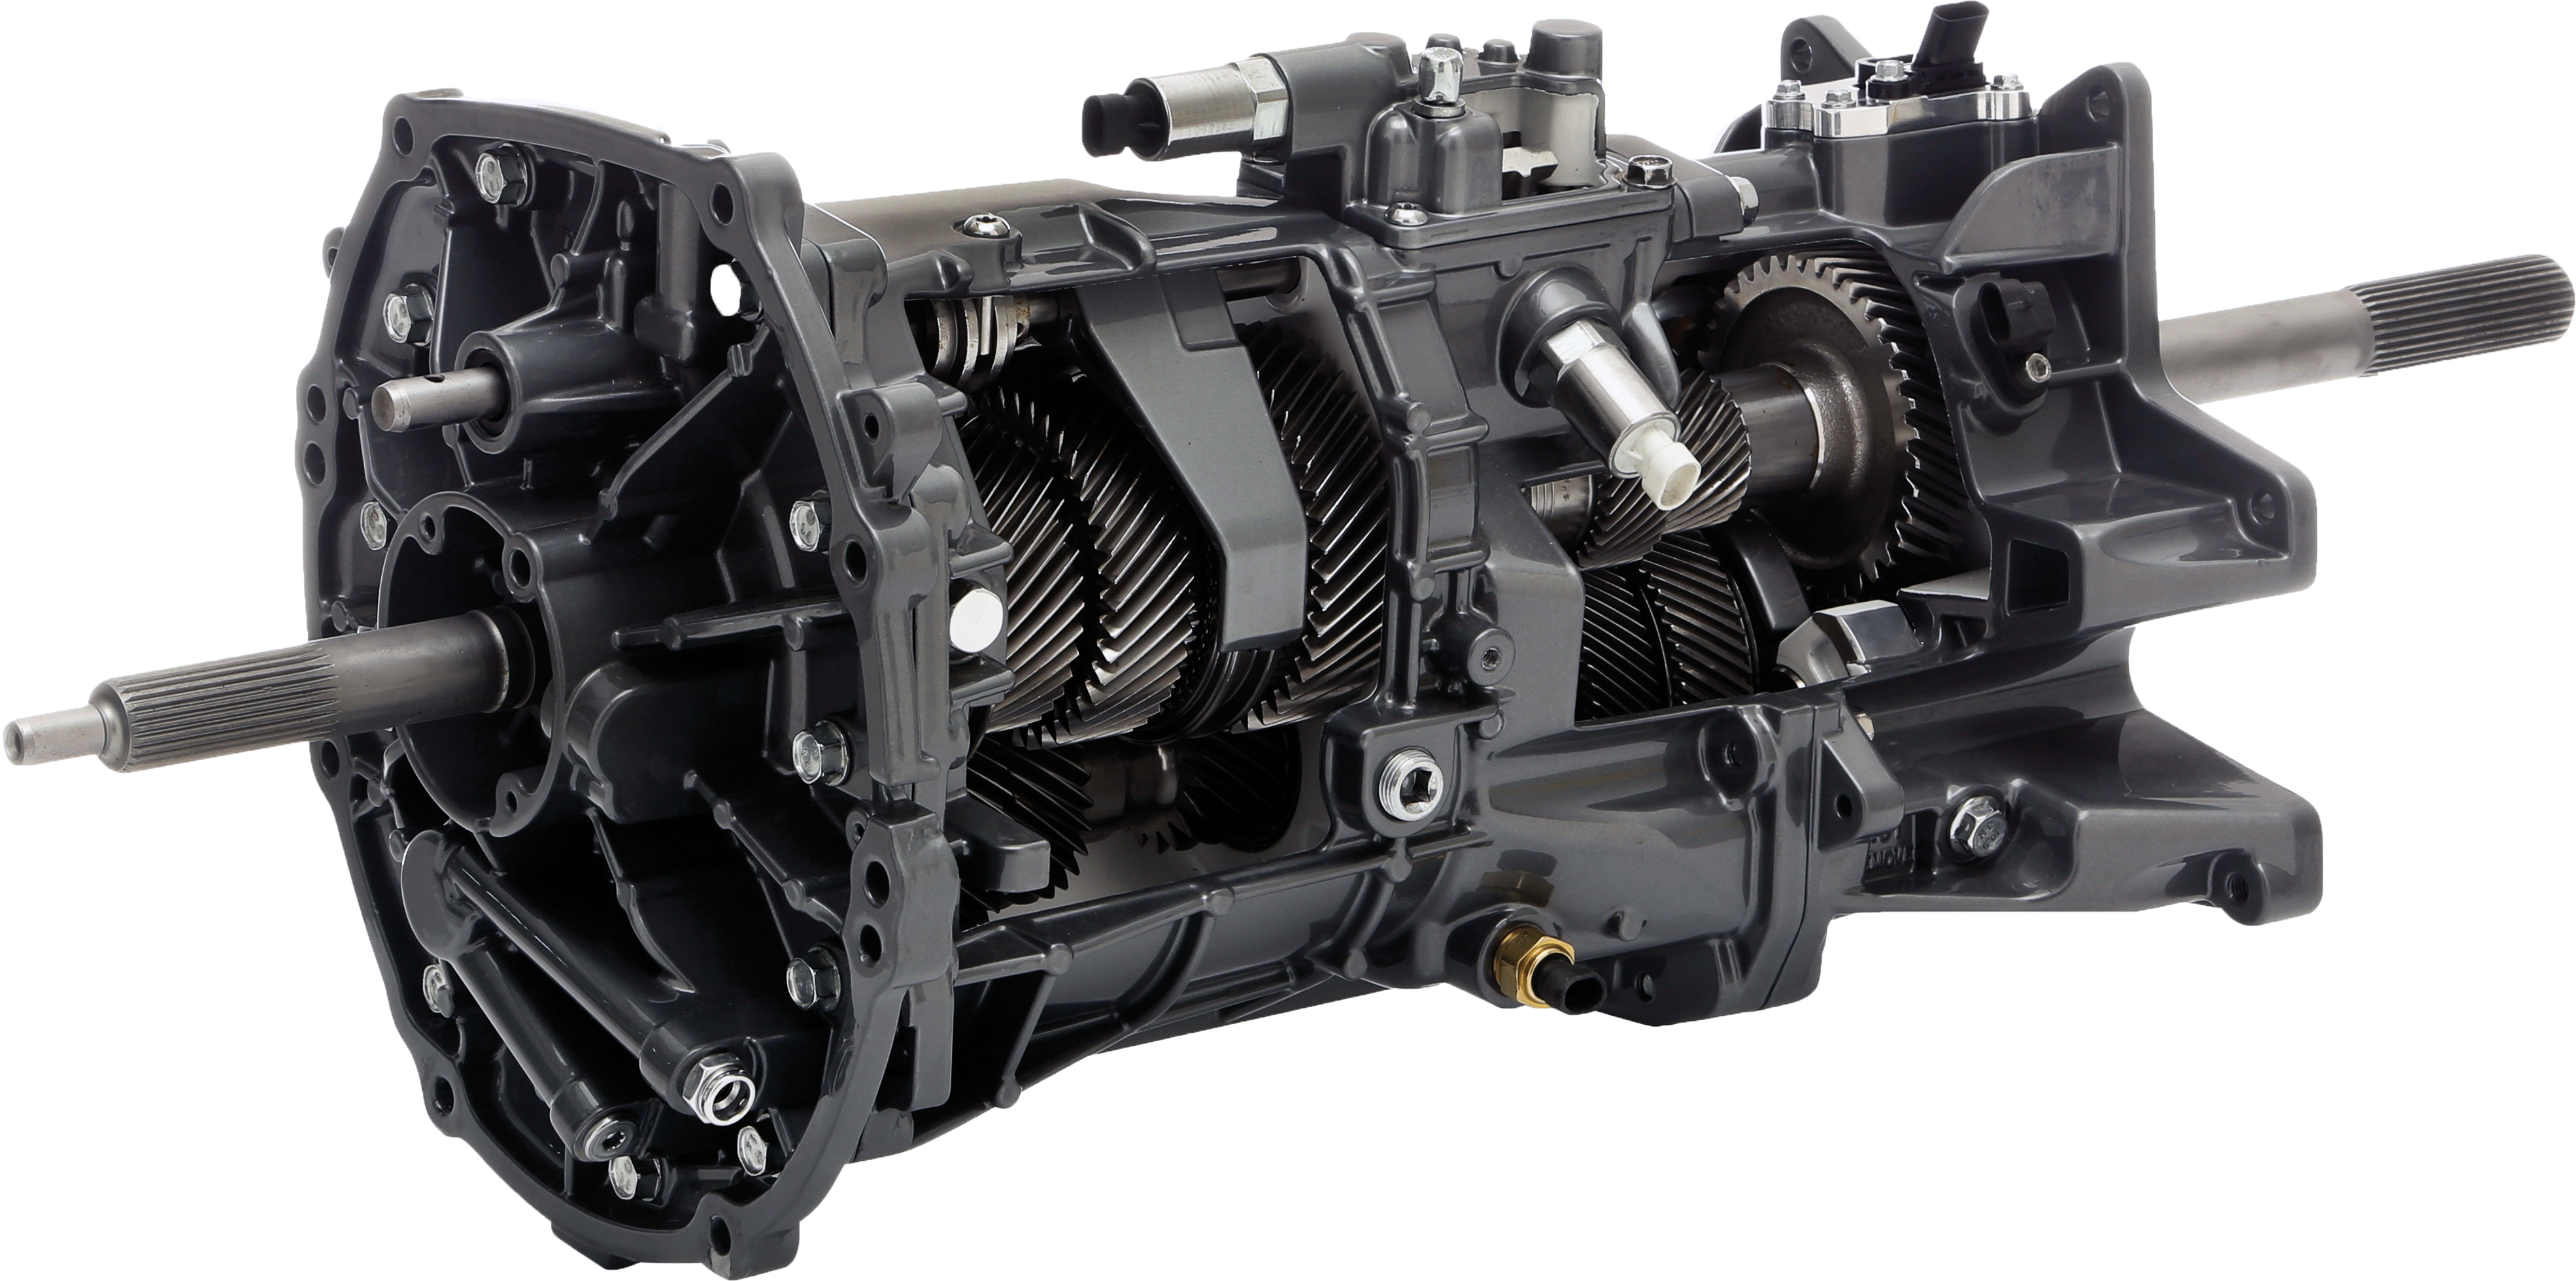 File:TREMEC TR-6070 7-speed manual transmission.jpg ...